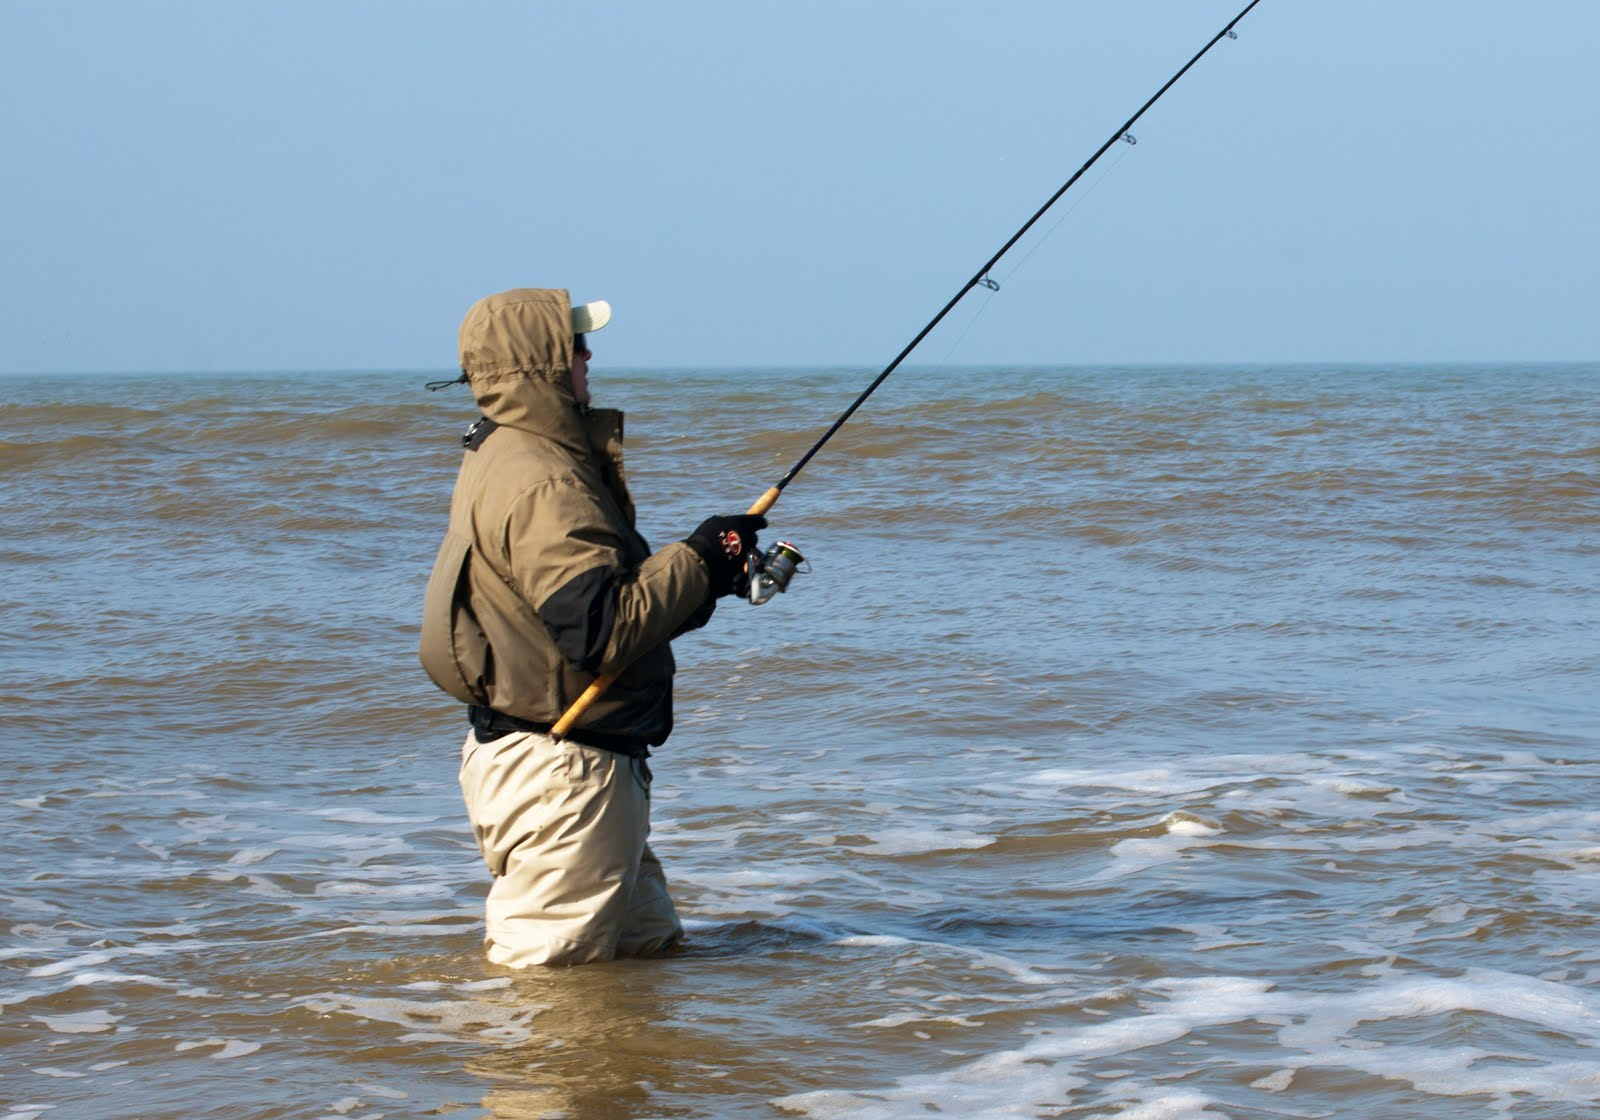 Sea_fishing-3.jpg